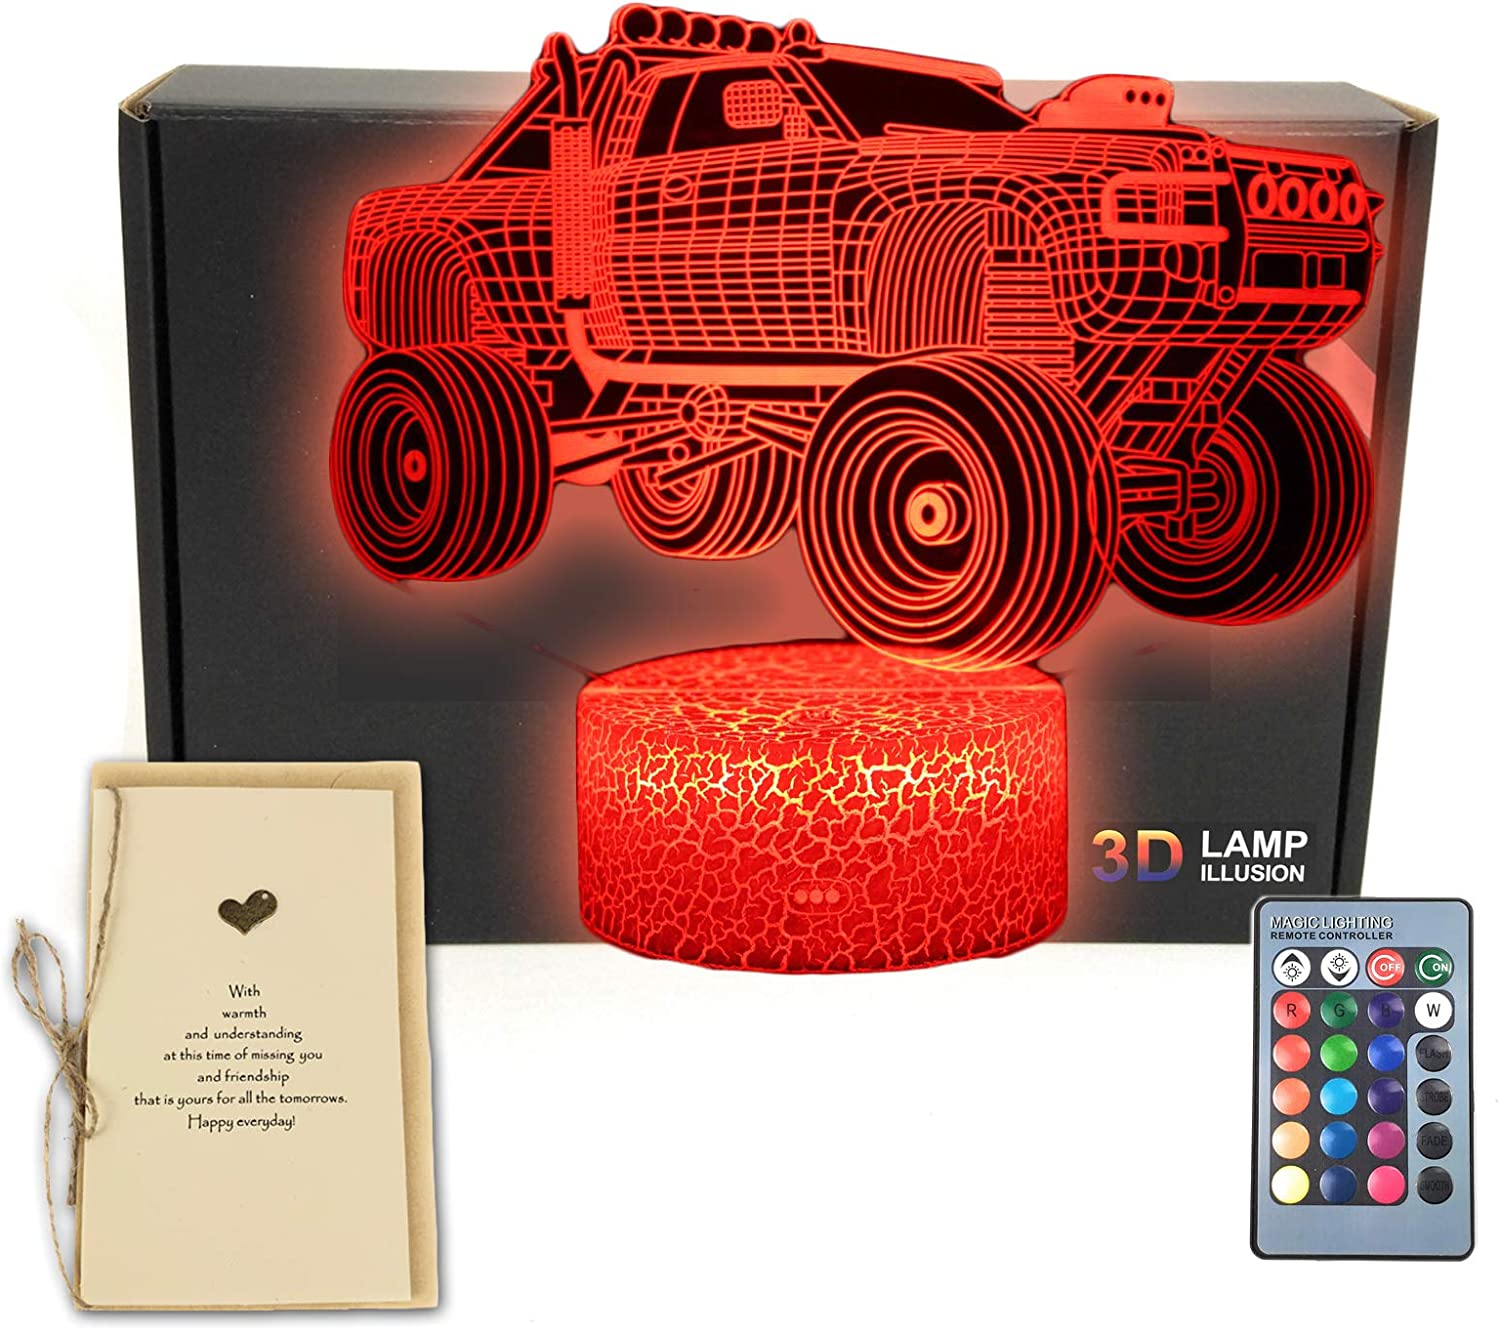 Monster Truck 3D Illusion Table Lamp Car Vehicle Room Decor Night Light with Greeting Card,16 Colors Remote Bedroom Decorations Toys Gifts Ideas for Men, Women, Kids, Boys, Girls, Teens